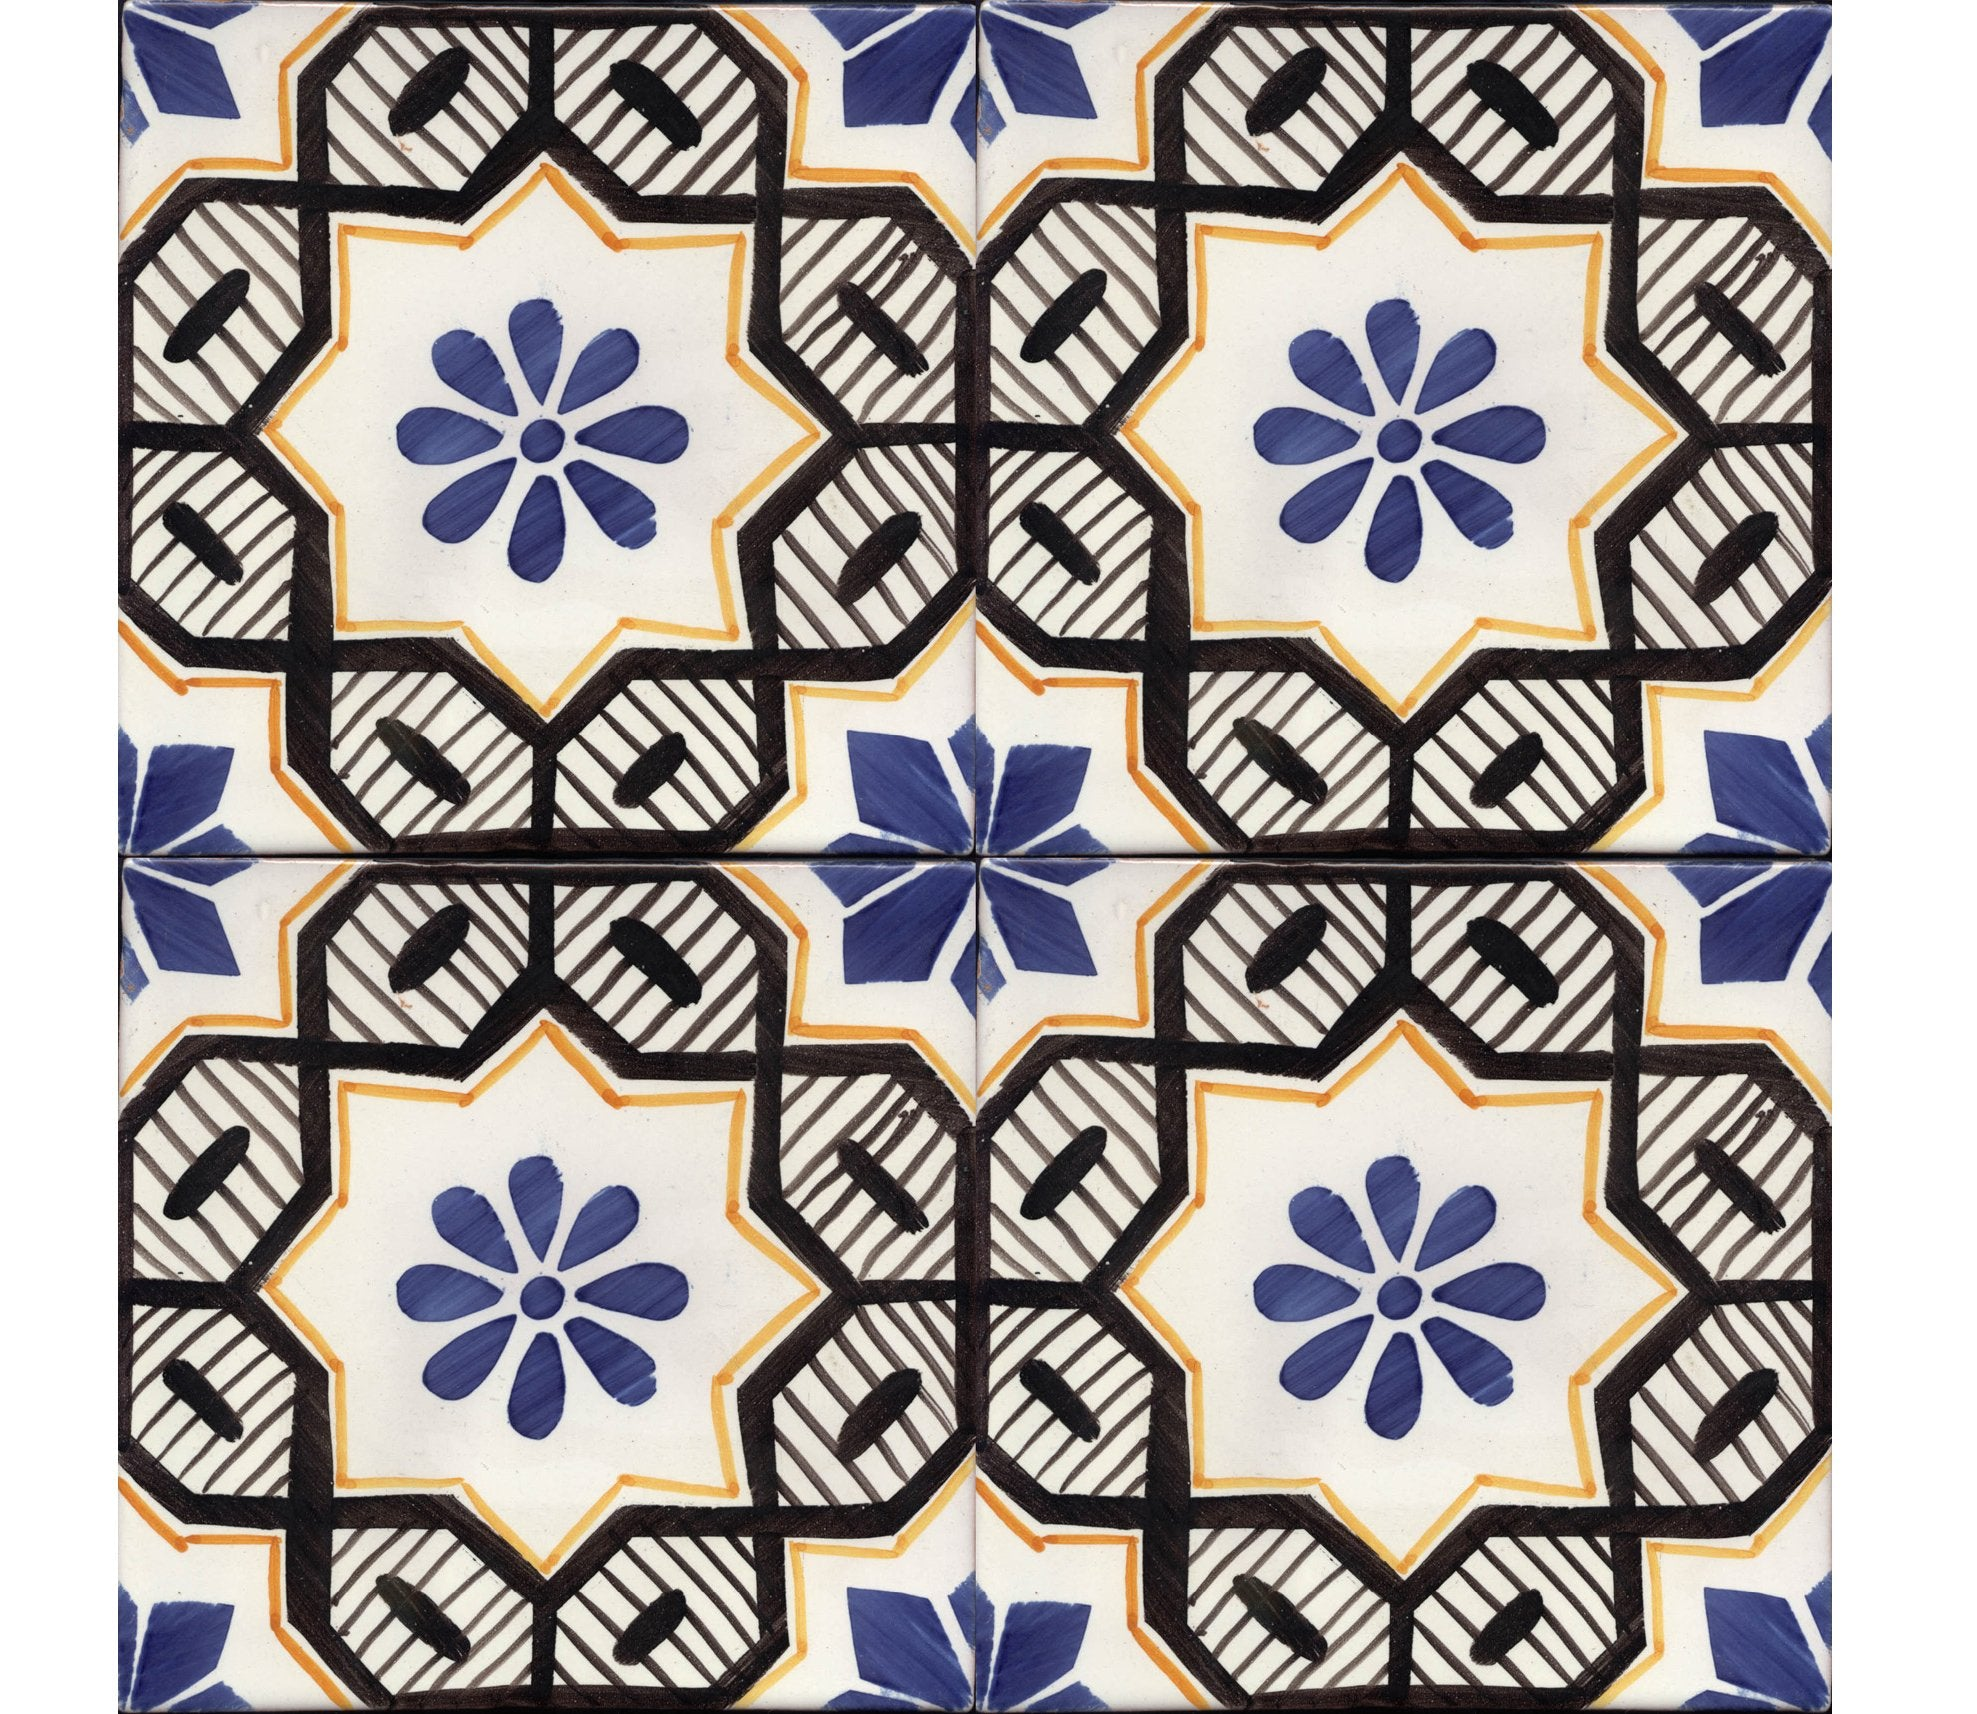 Series S Handpainted Tiles Product Image 20